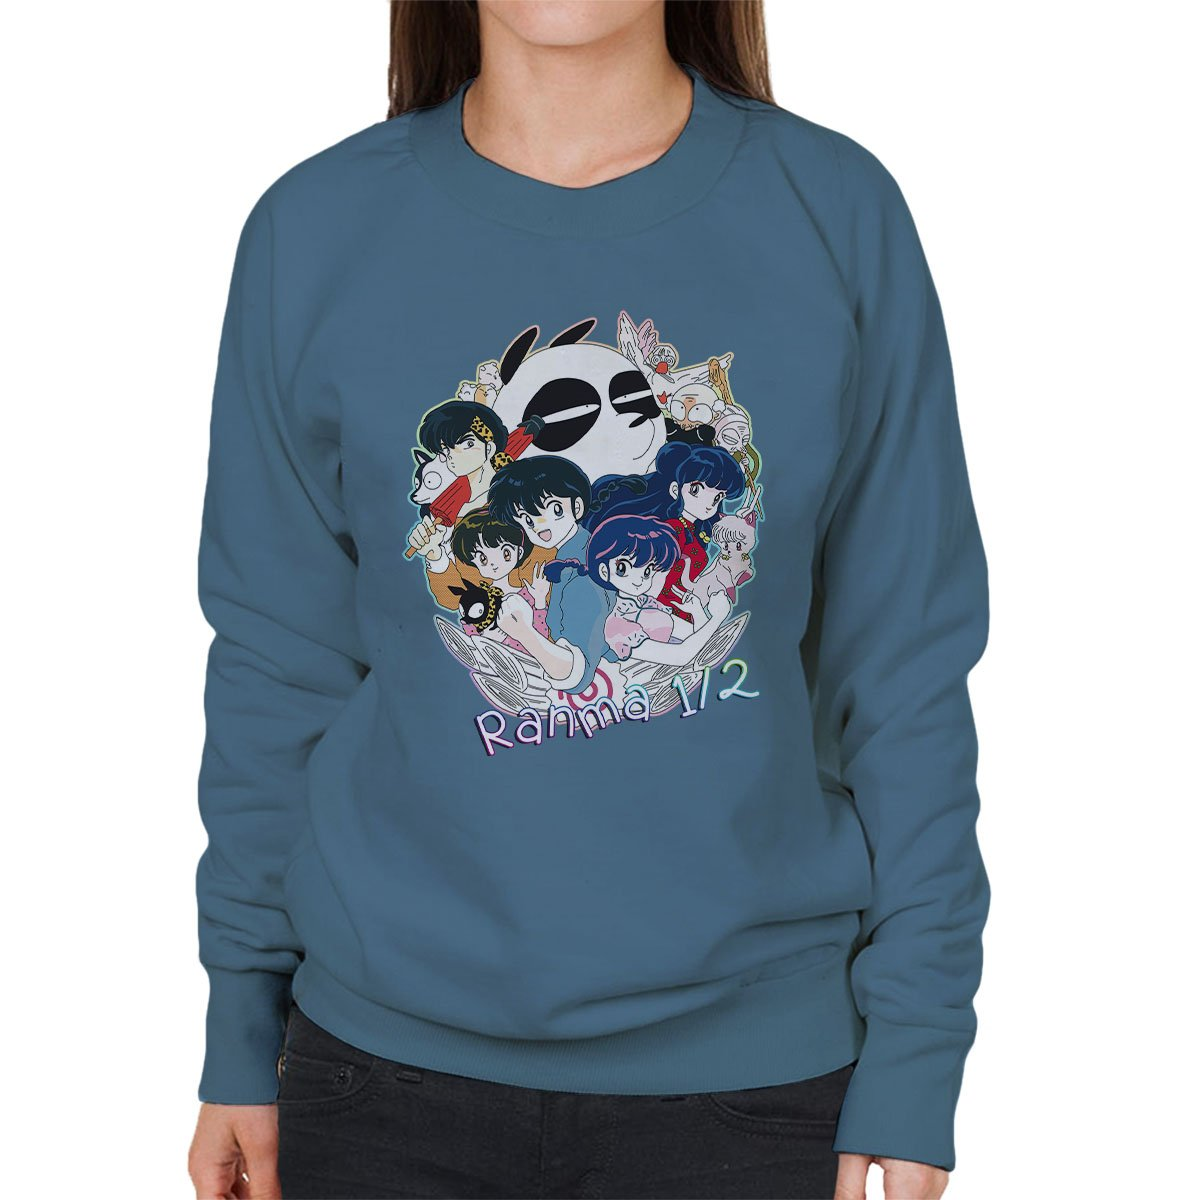 Cloud City 7 Ranma Characters Womens Sweatshirt: Amazon.es: Ropa y accesorios